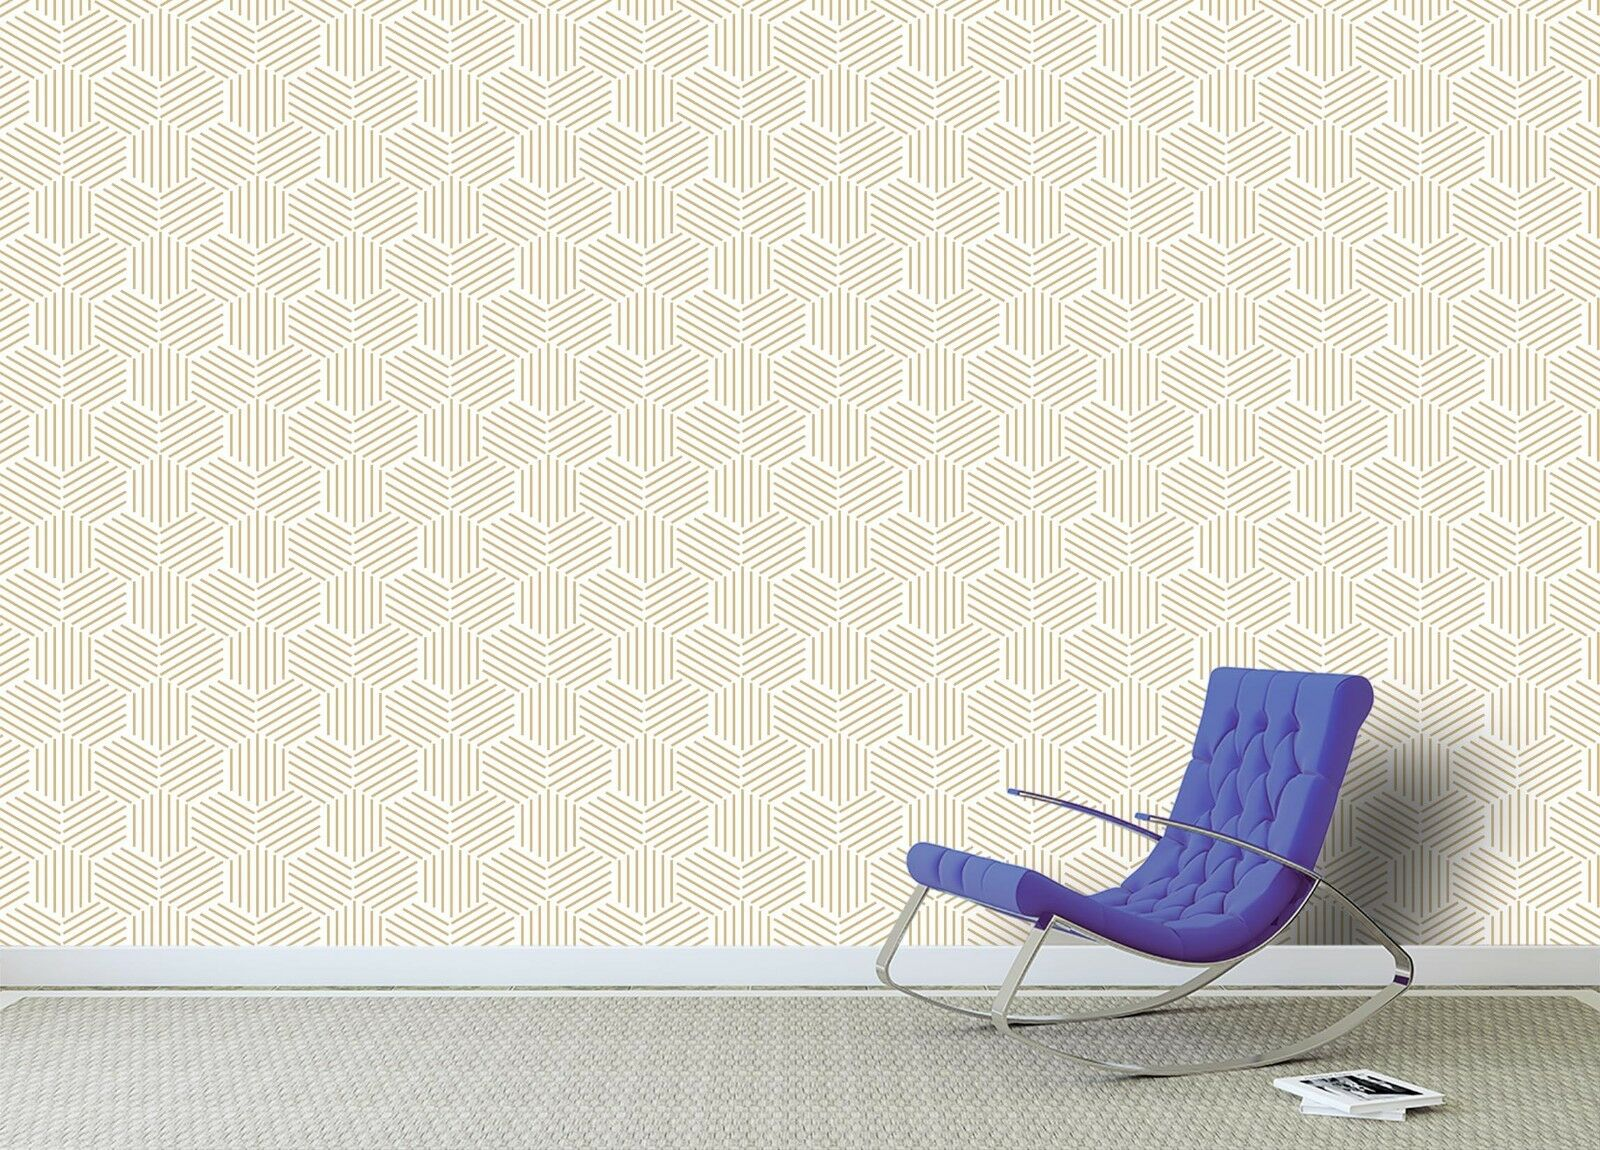 3D Line Pattern 718 Wall Paper Print Wall Decal Deco Indoor Wall Murals US